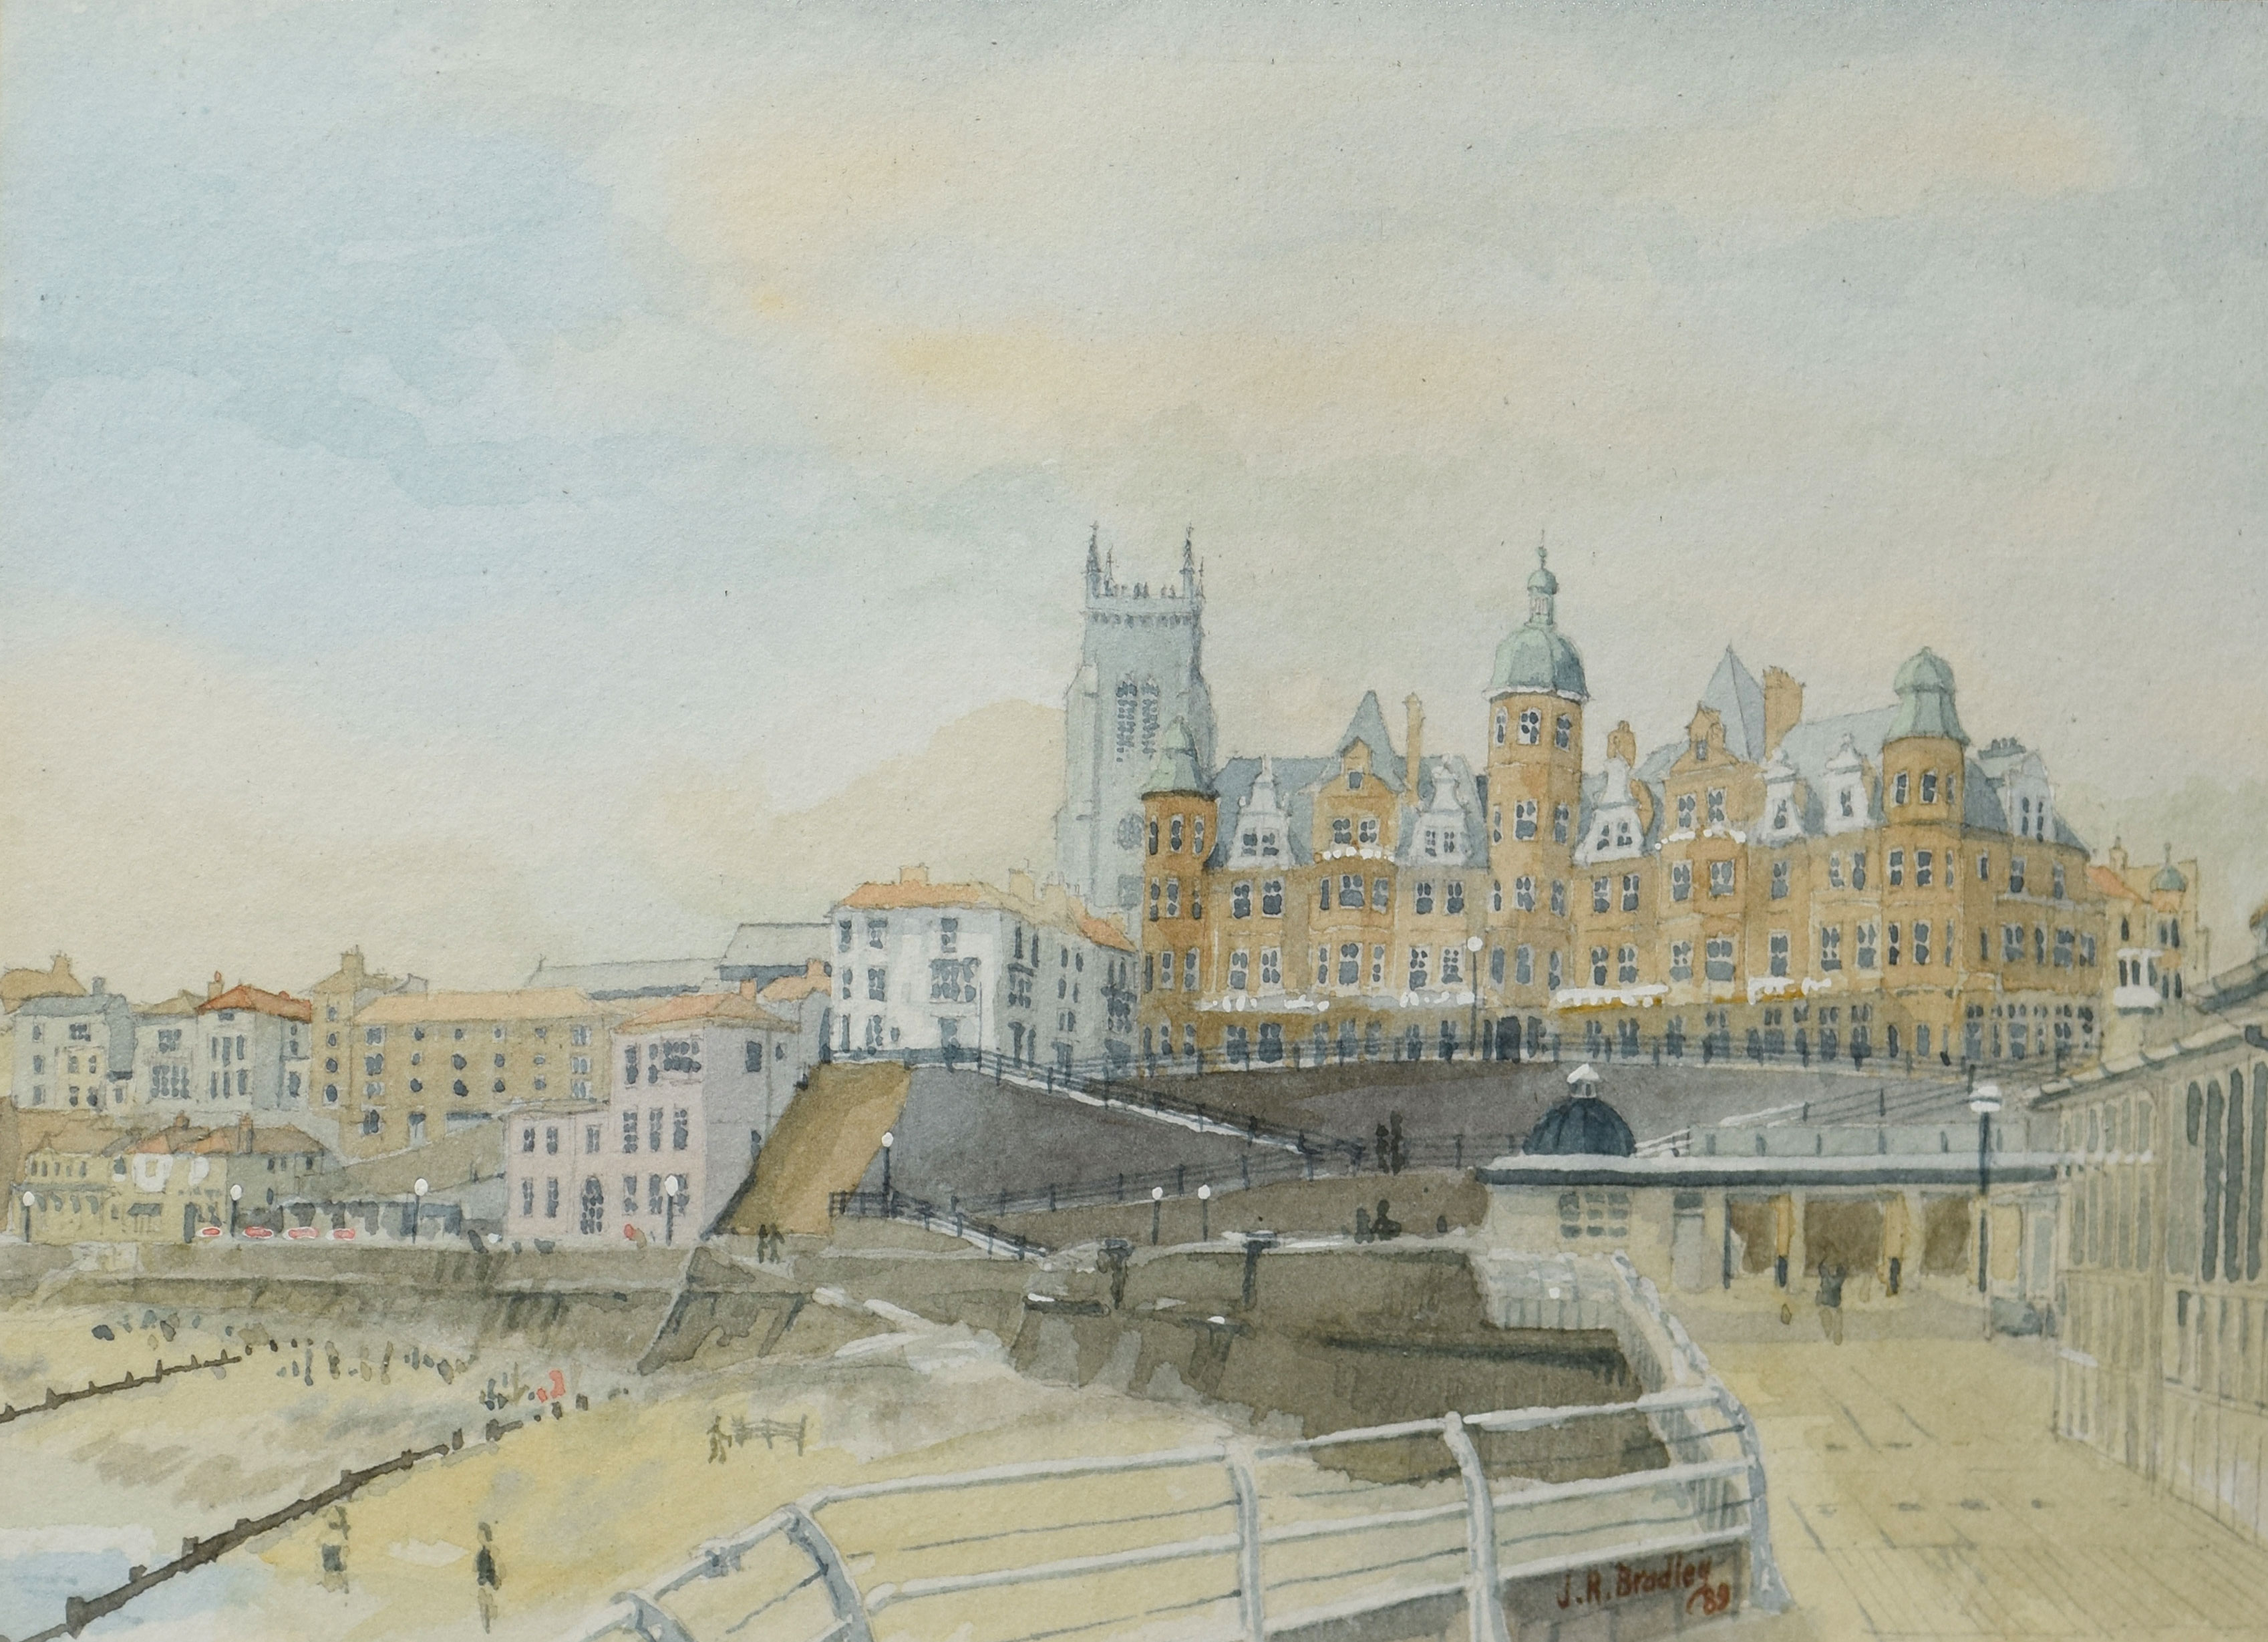 J R Bradley, Cromer, watercolour, signed and dated 89 lower right, 17 x 24cm